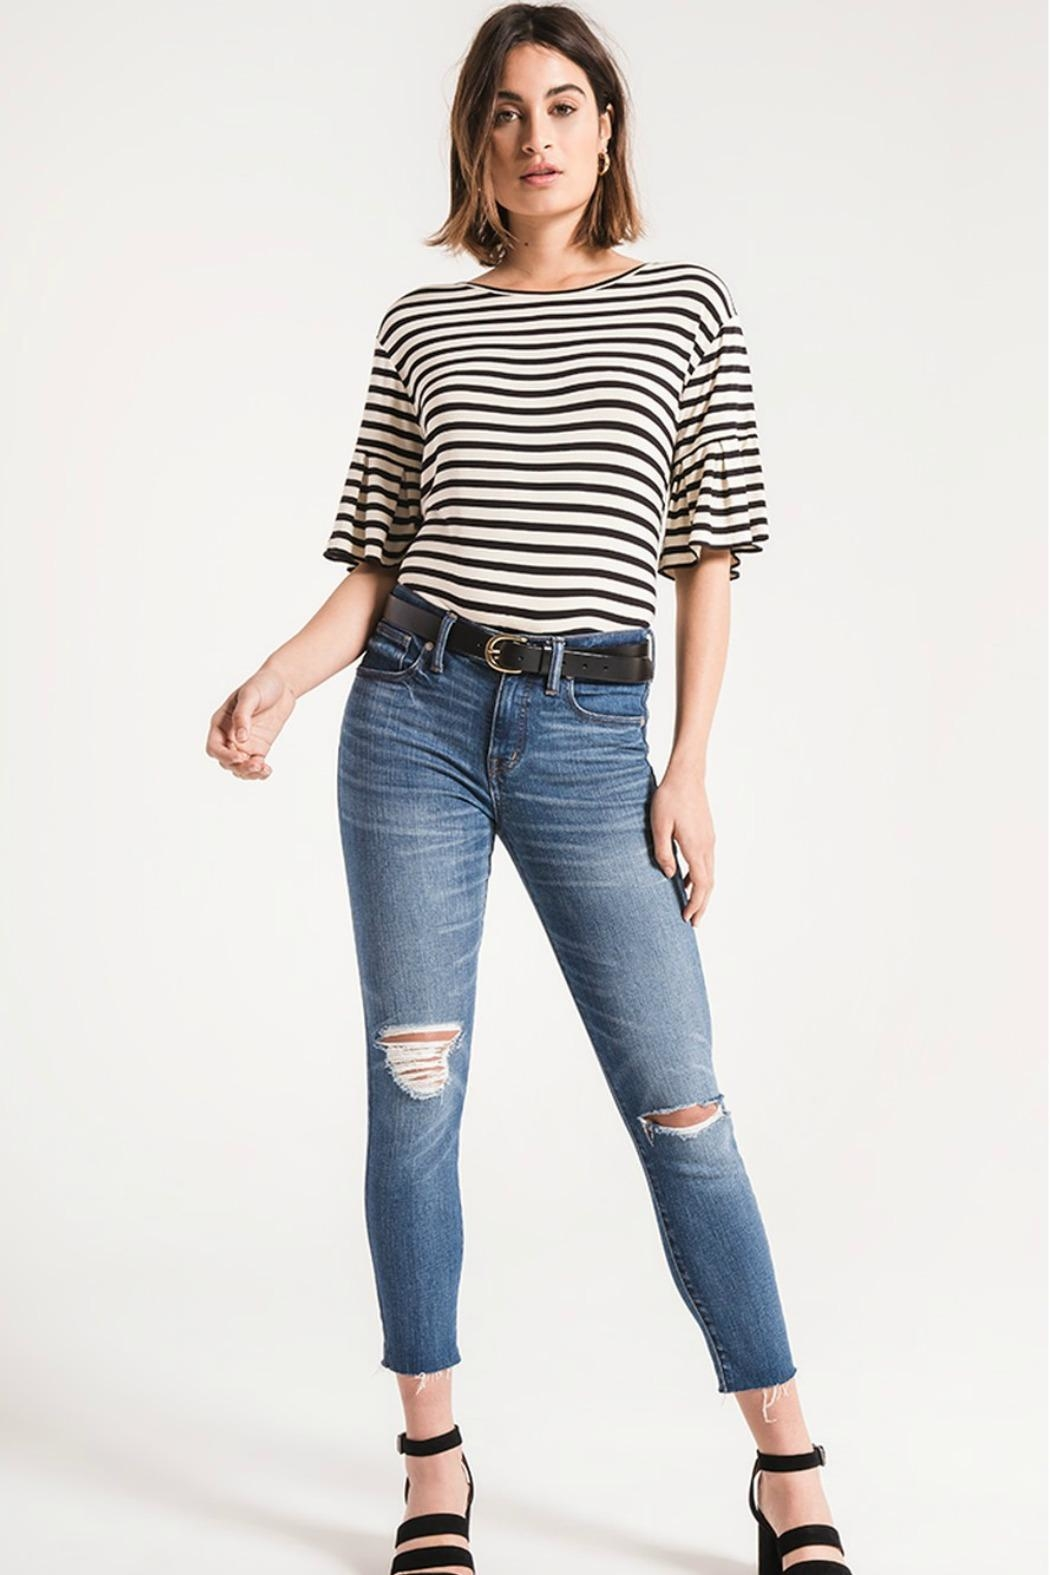 z supply Striped Ruffle Tee - Front Cropped Image